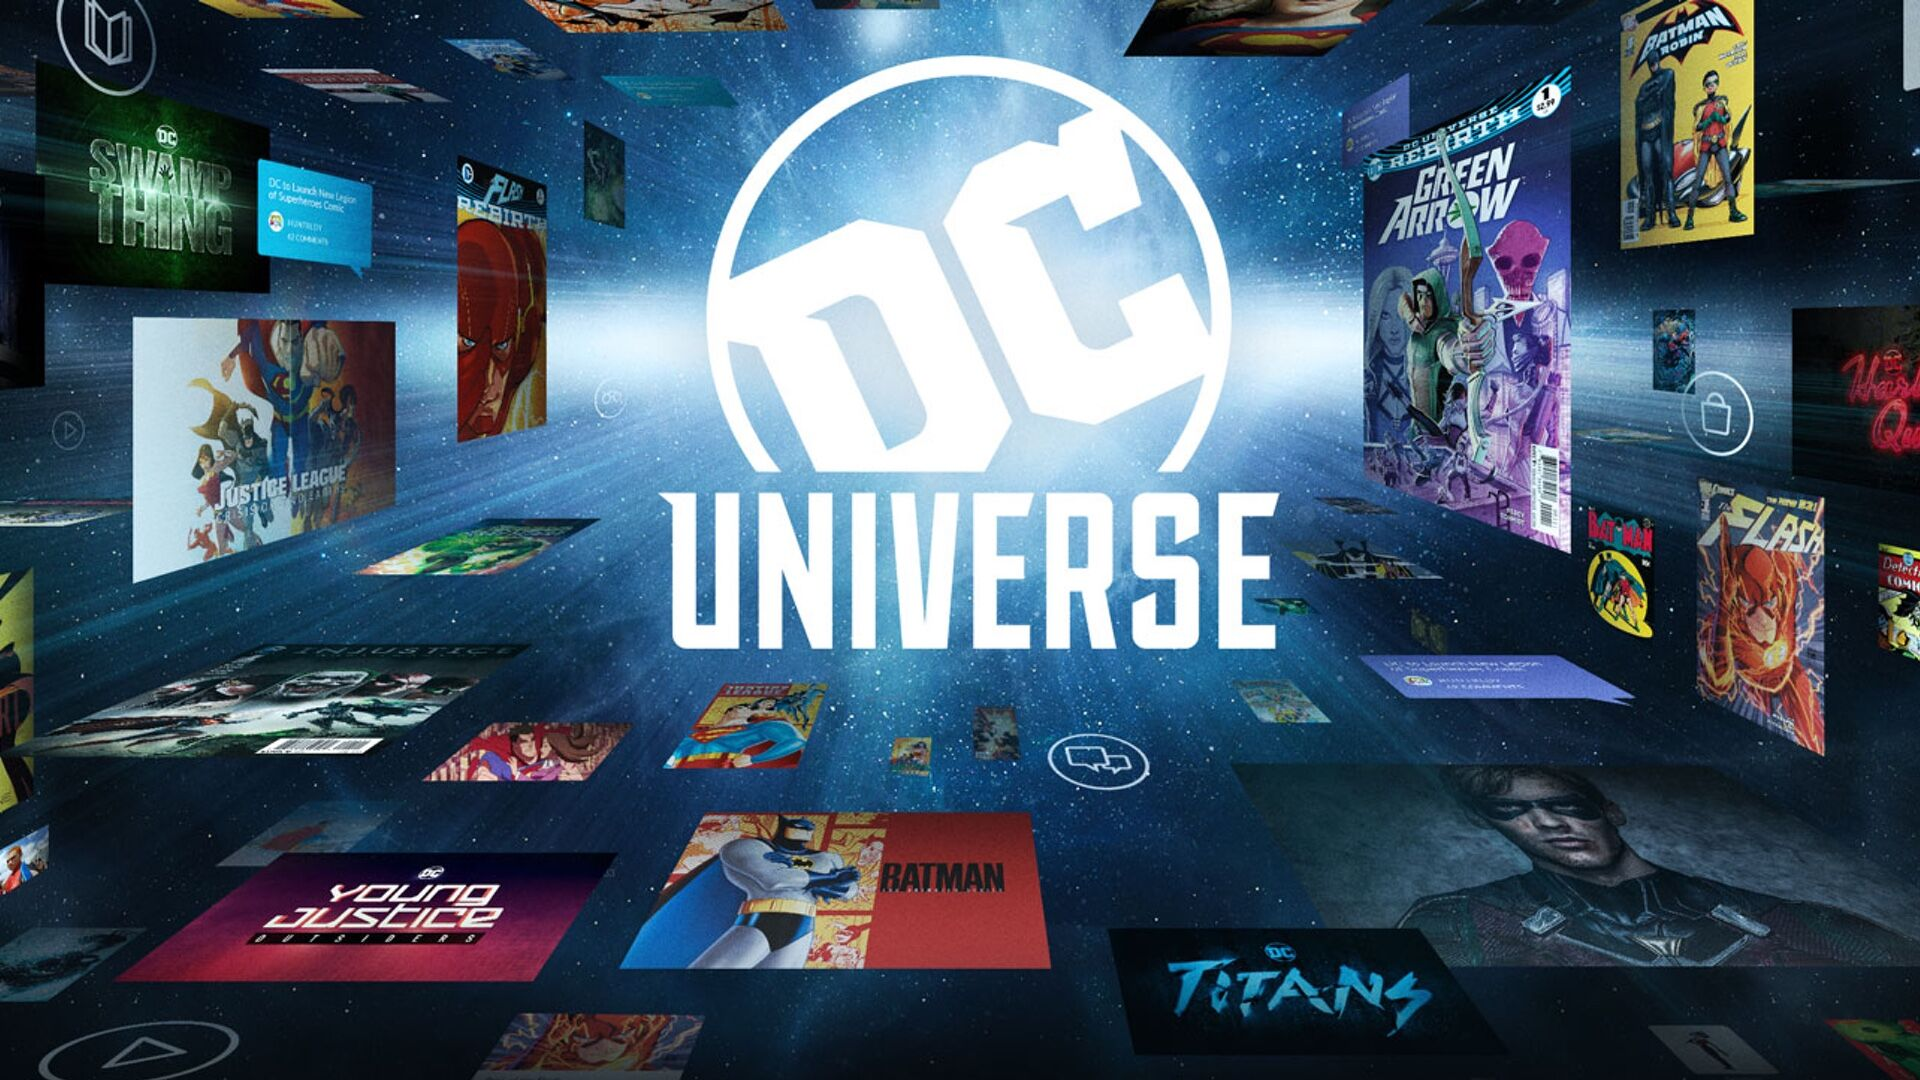 DC Universe to unlock digital comic library, expands content slate